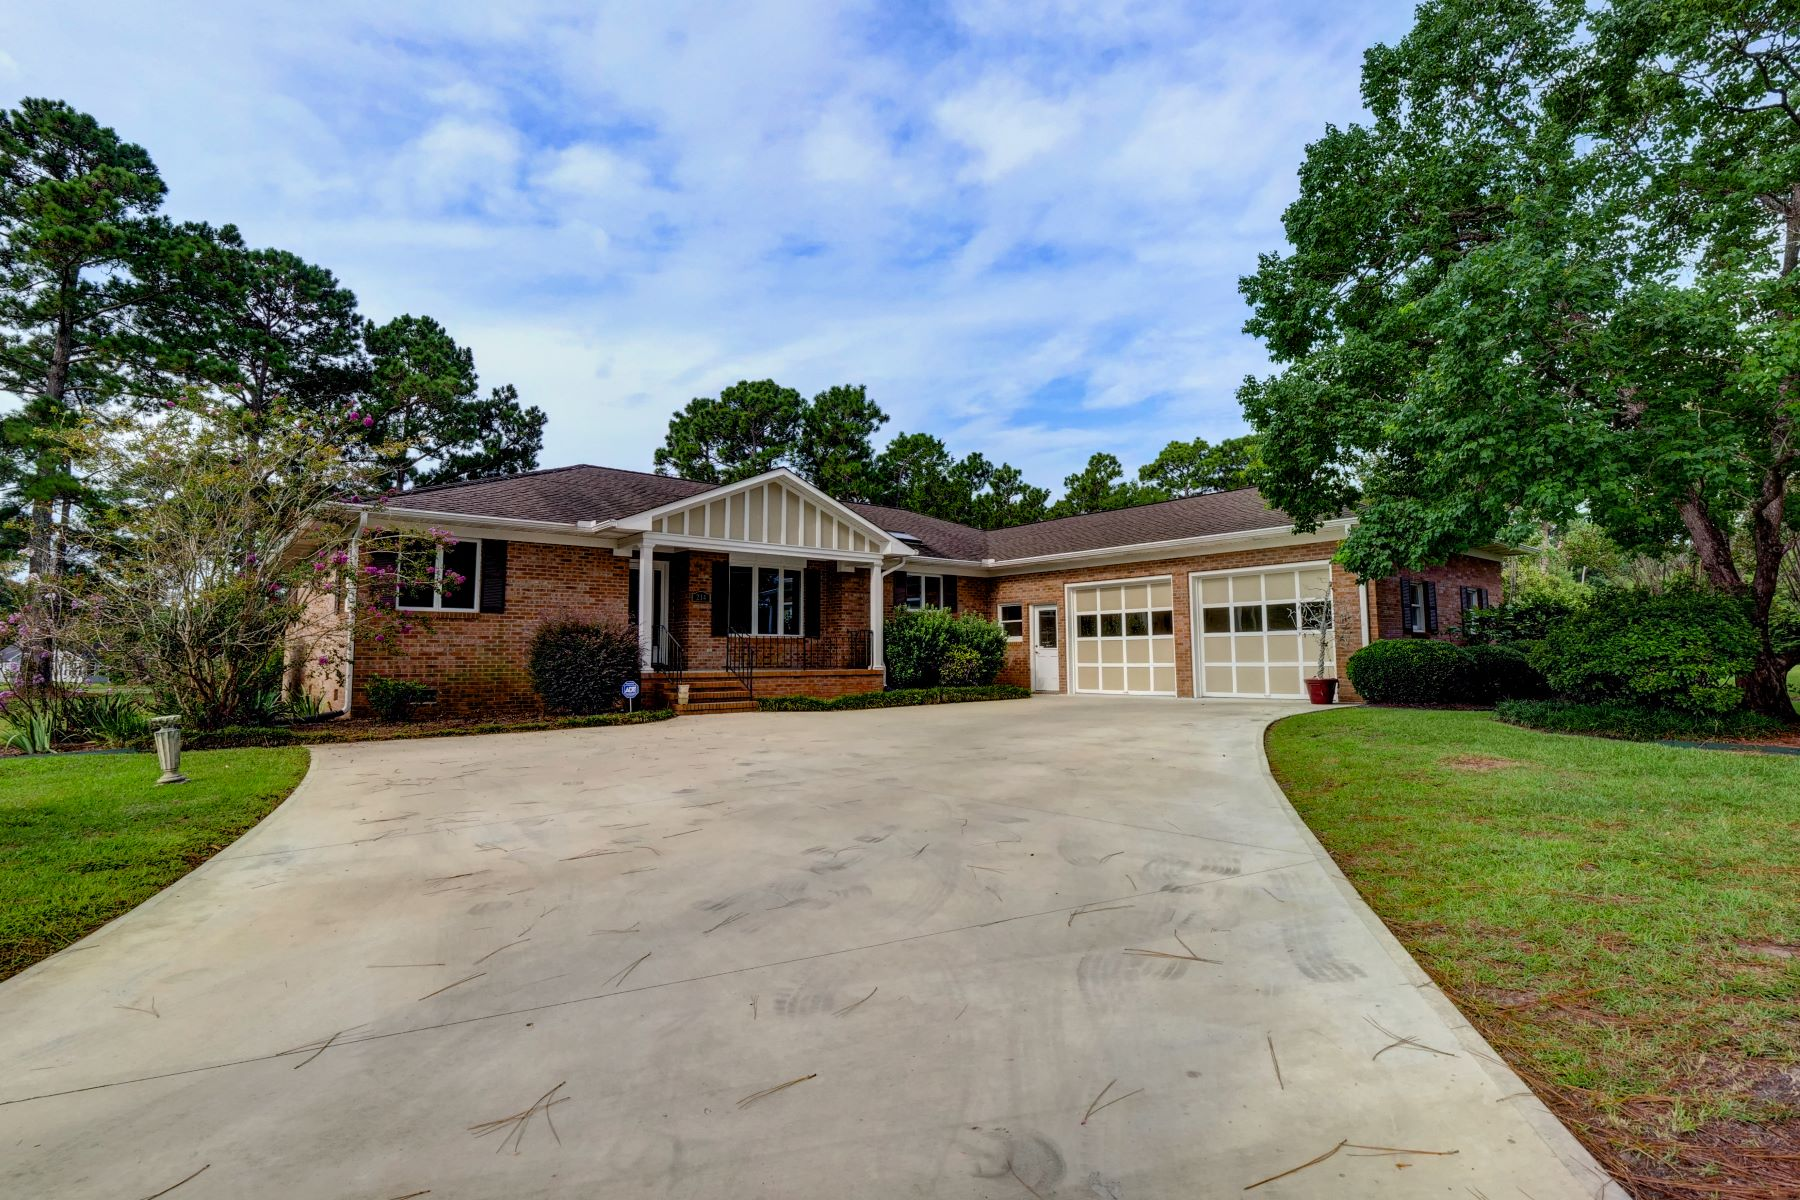 Single Family Home for Active at Beautifully Updated Golf Course Home 214 Long Leaf Drive Hampstead, North Carolina 28443 United States